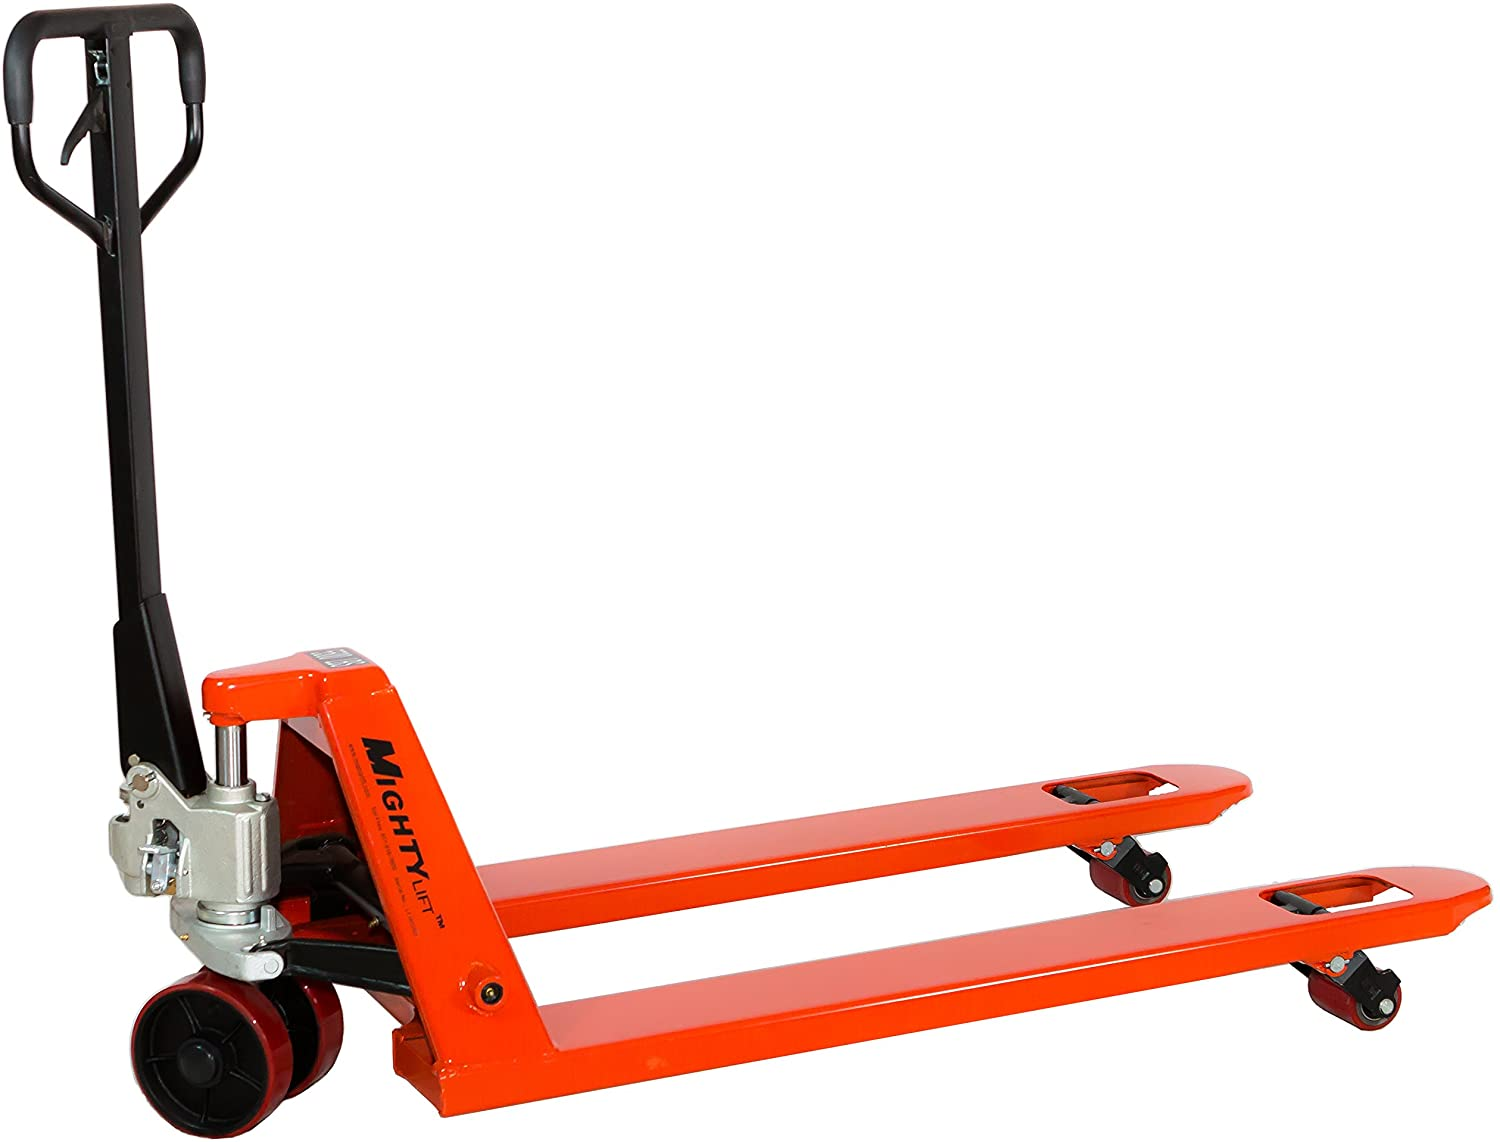 Mighty Lift Pallet Jack Truck